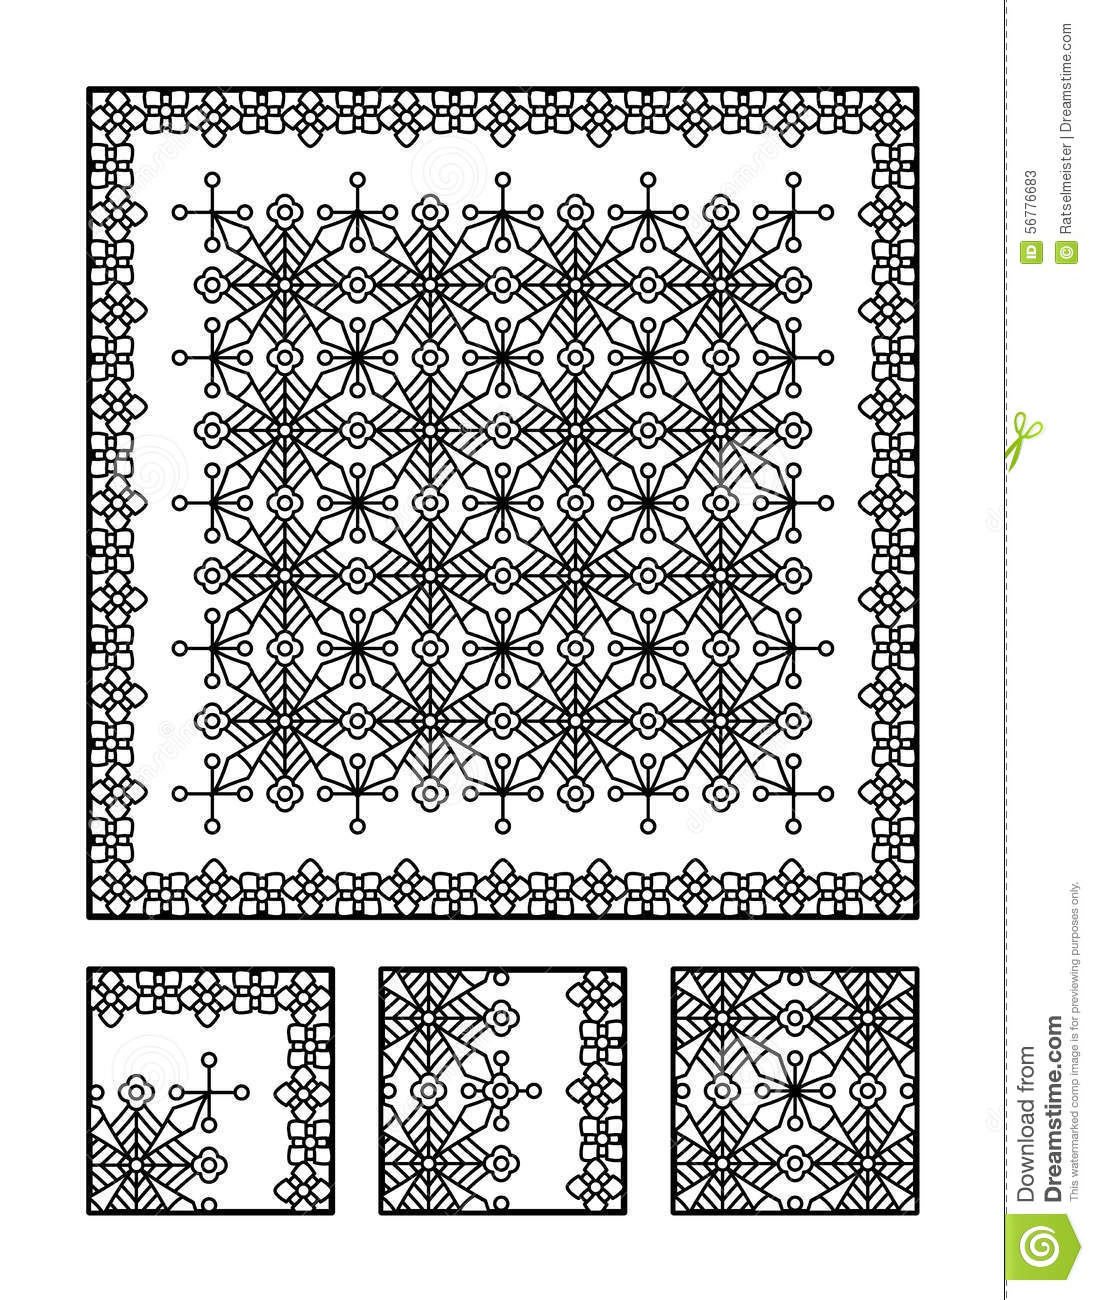 Coloring Page And Visual Puzzle For Adults Stock Vector